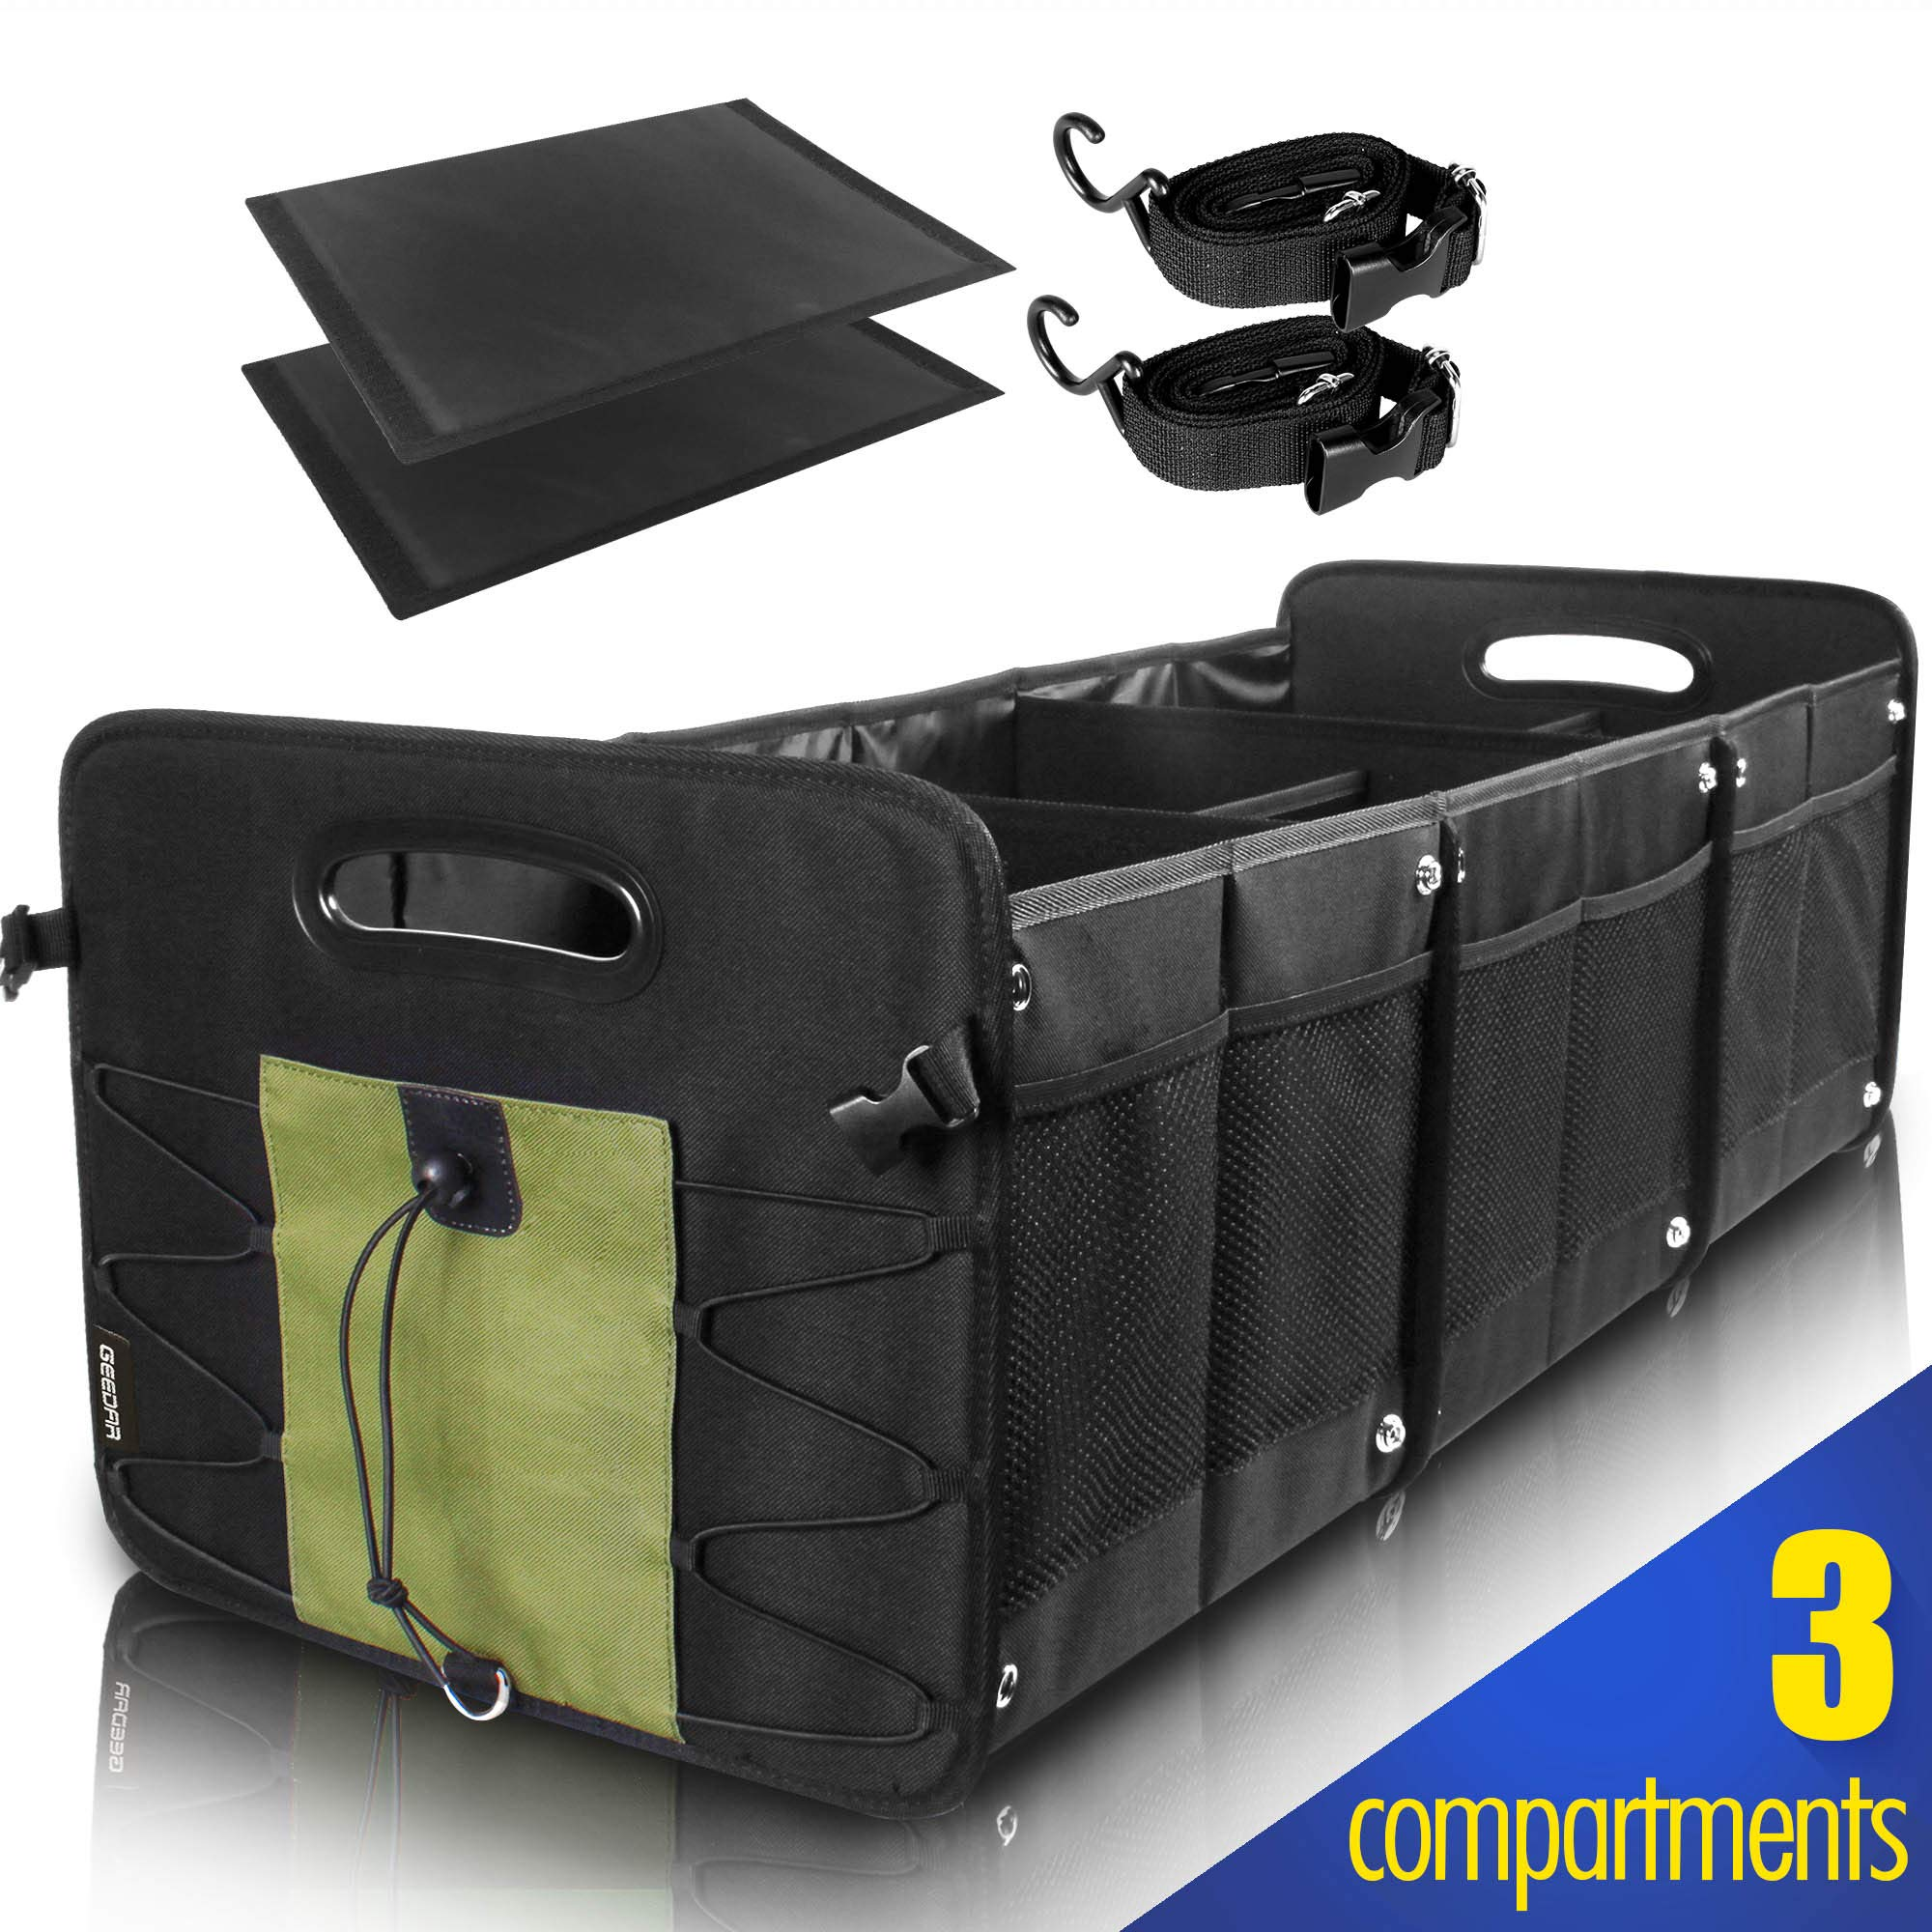 GEEDAR Trunk Organizer for Car SUV Trunk Organizers and Storage [3 Large Compartments] Collapsible Portable Non-Slip Bottom with Tie Down Straps (Green) by GEEDAR